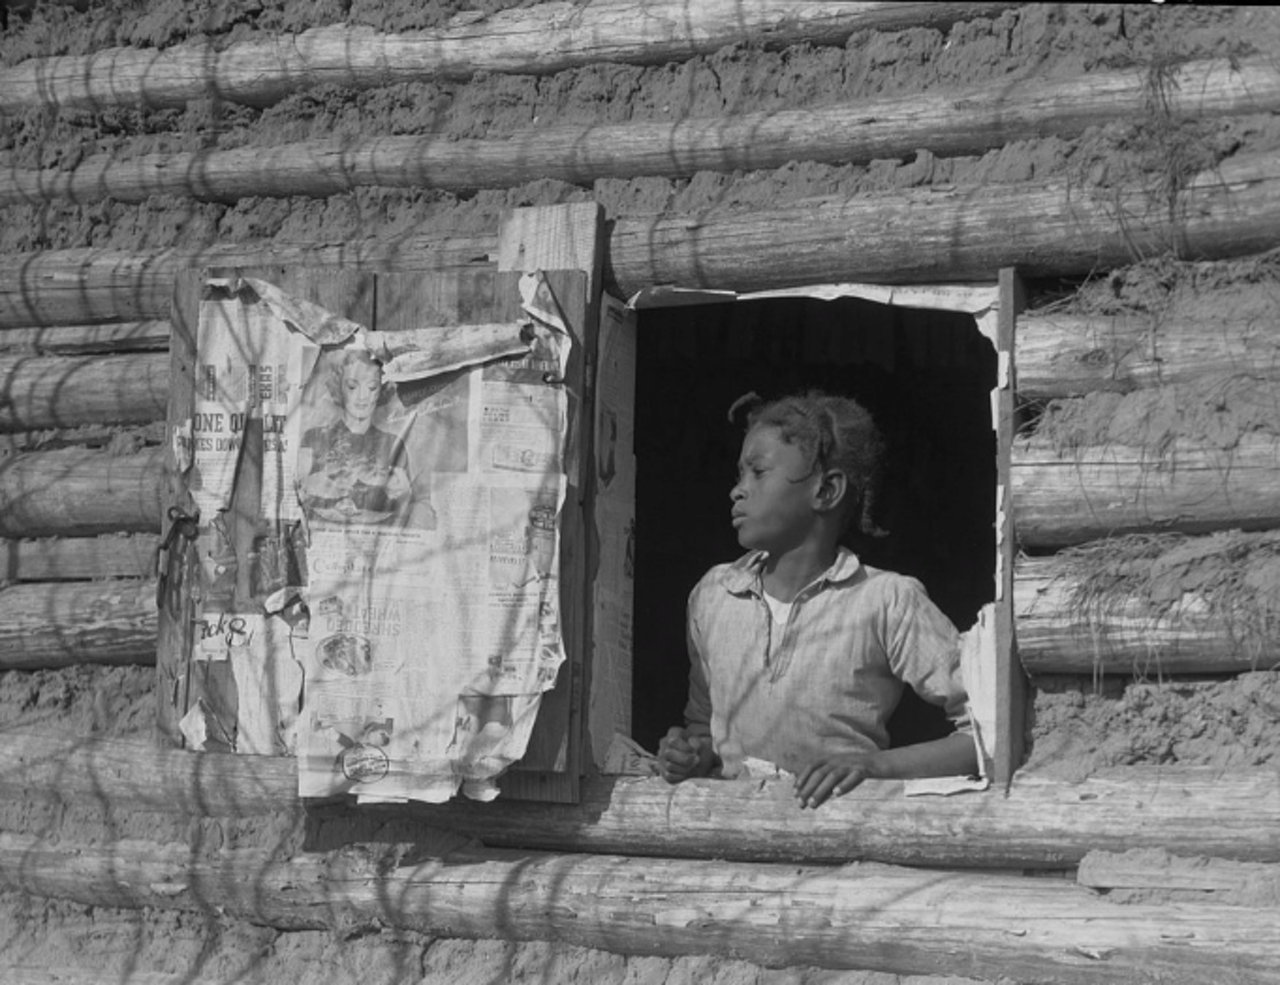 "Arthur Rothstein was the first photographer hired by the New Deal-funded Resettlement Agency to document rural life in America. ""Girl at Gee's Bend,"" taken when he visited the community in 1937, is among his most-famous images. It shows a young Artelia Bendolph in her family's log cabin. The federal official who commissioned Rothstein called Gee's Bend ""the most primitive set-up"" he'd ever heard of. Bendolph died in 2003 at age 76."